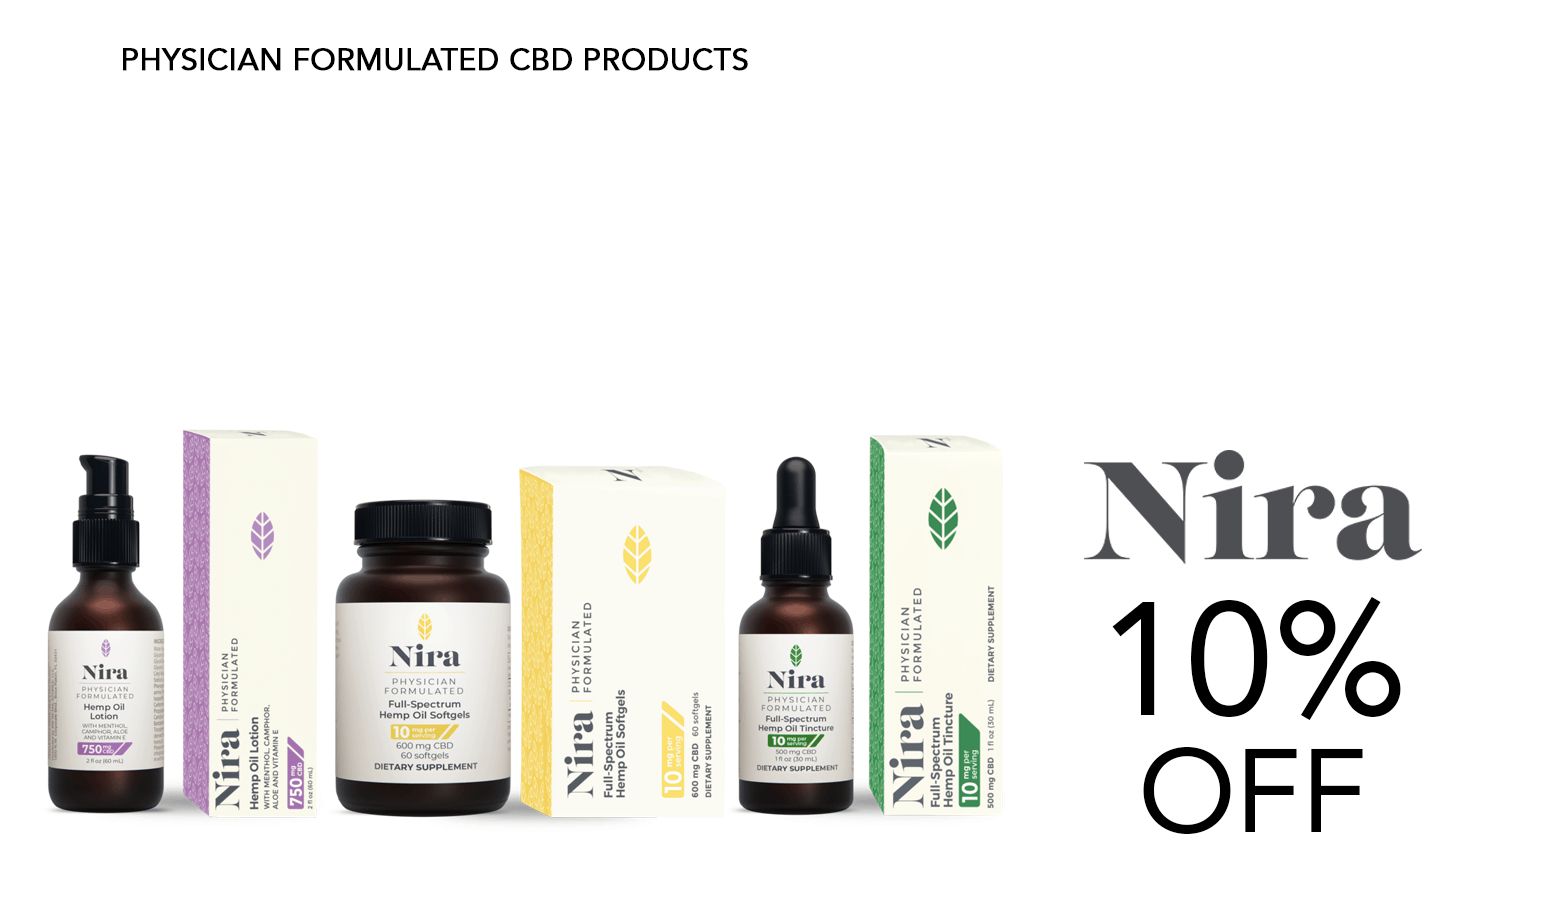 Nira CBD Coupon Code Offer Promo